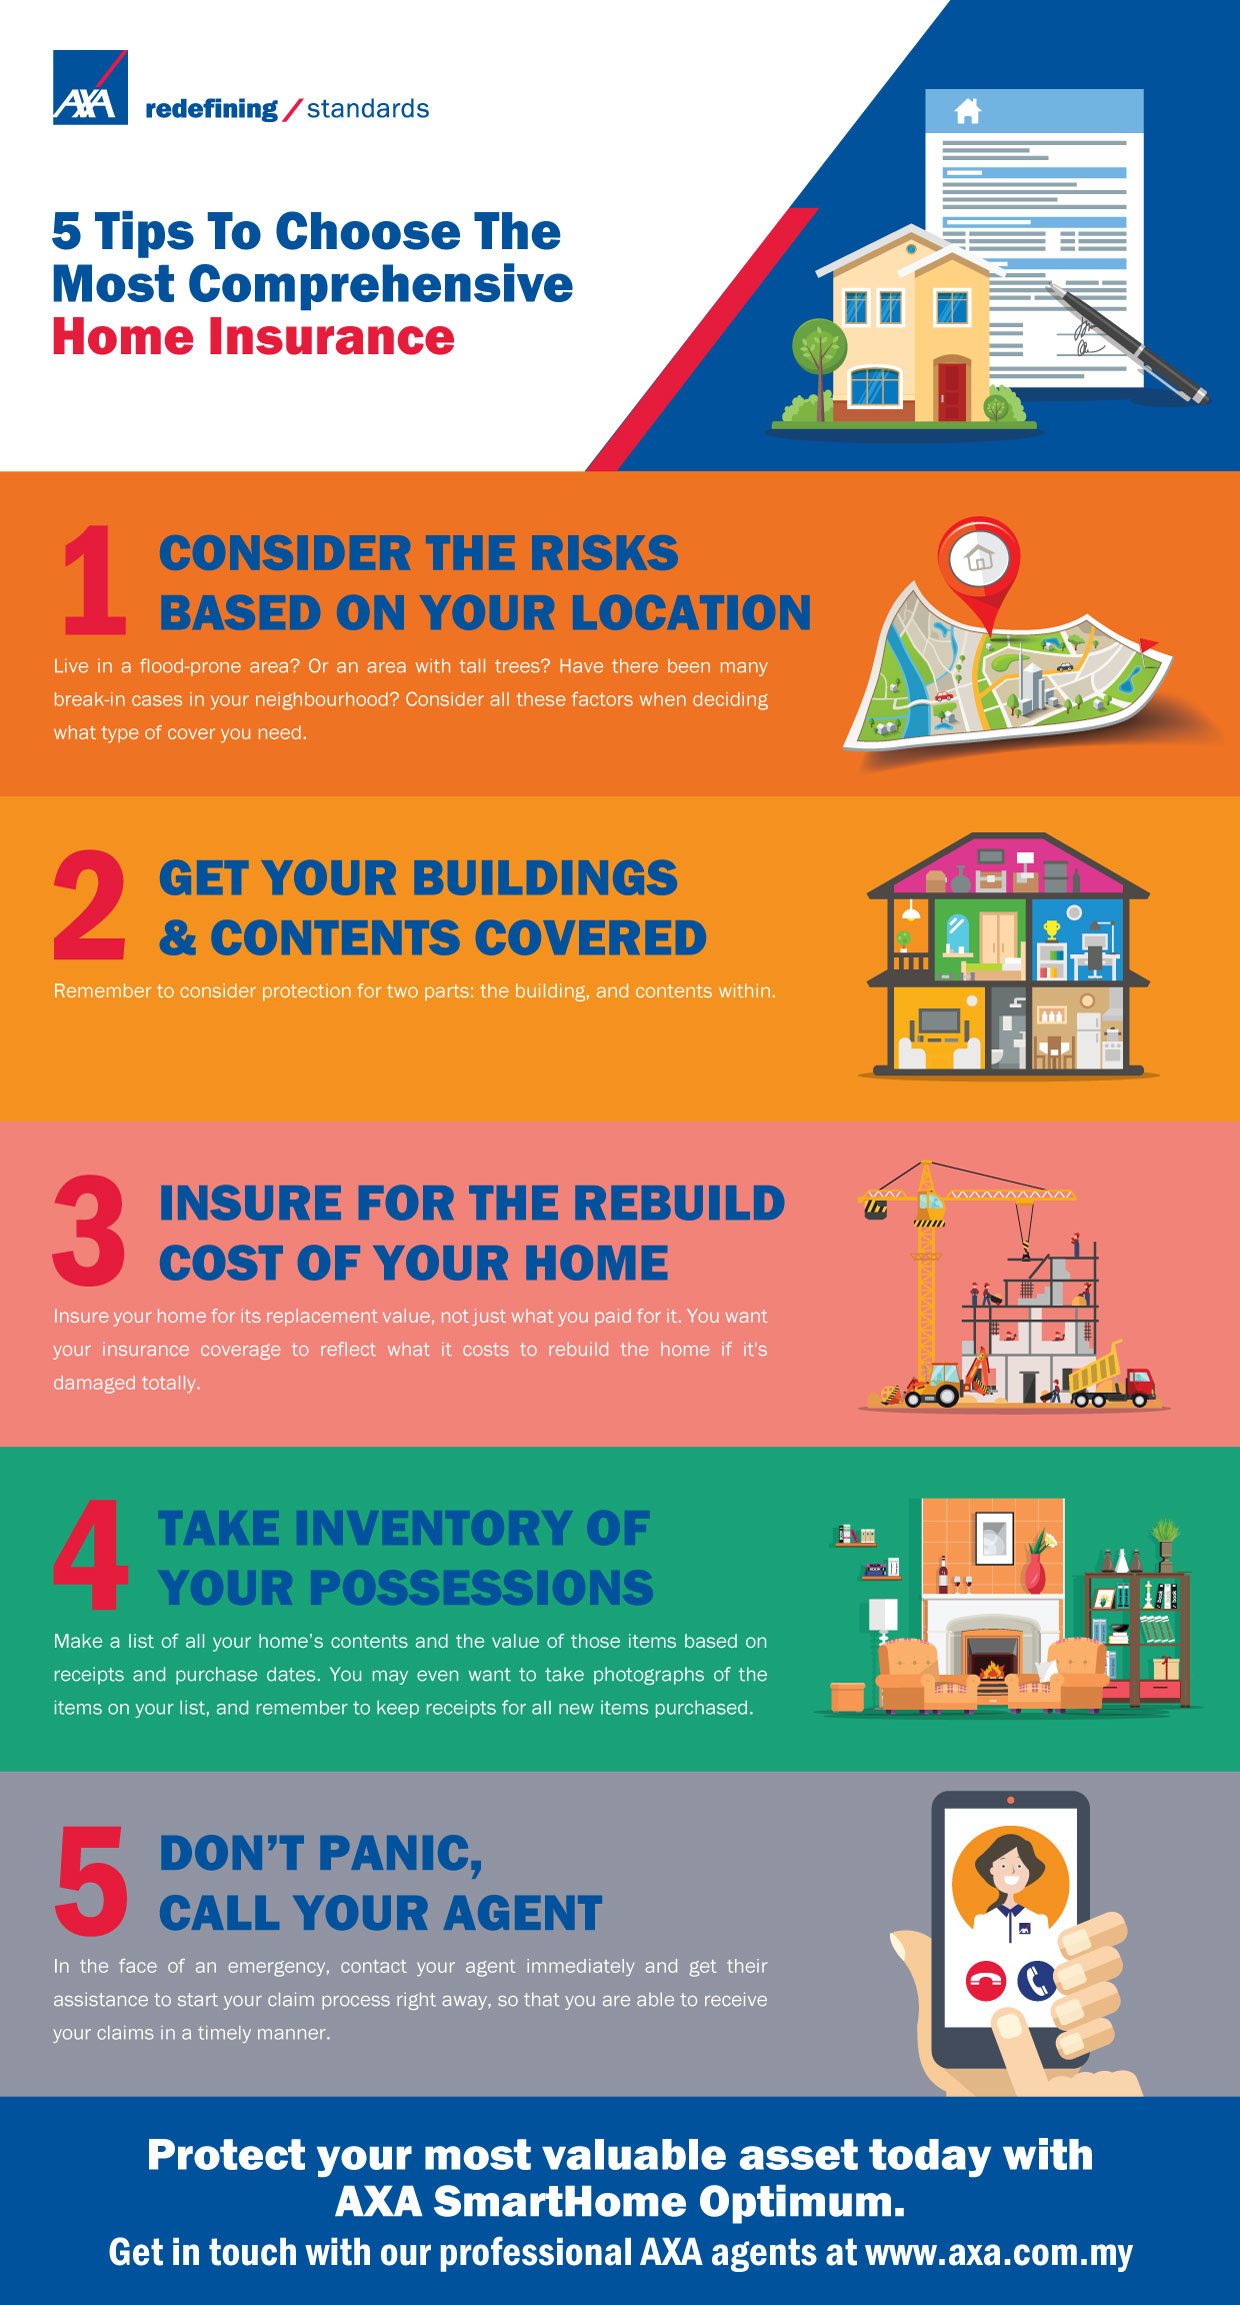 5 tips to choose the most comprehensive home insurance